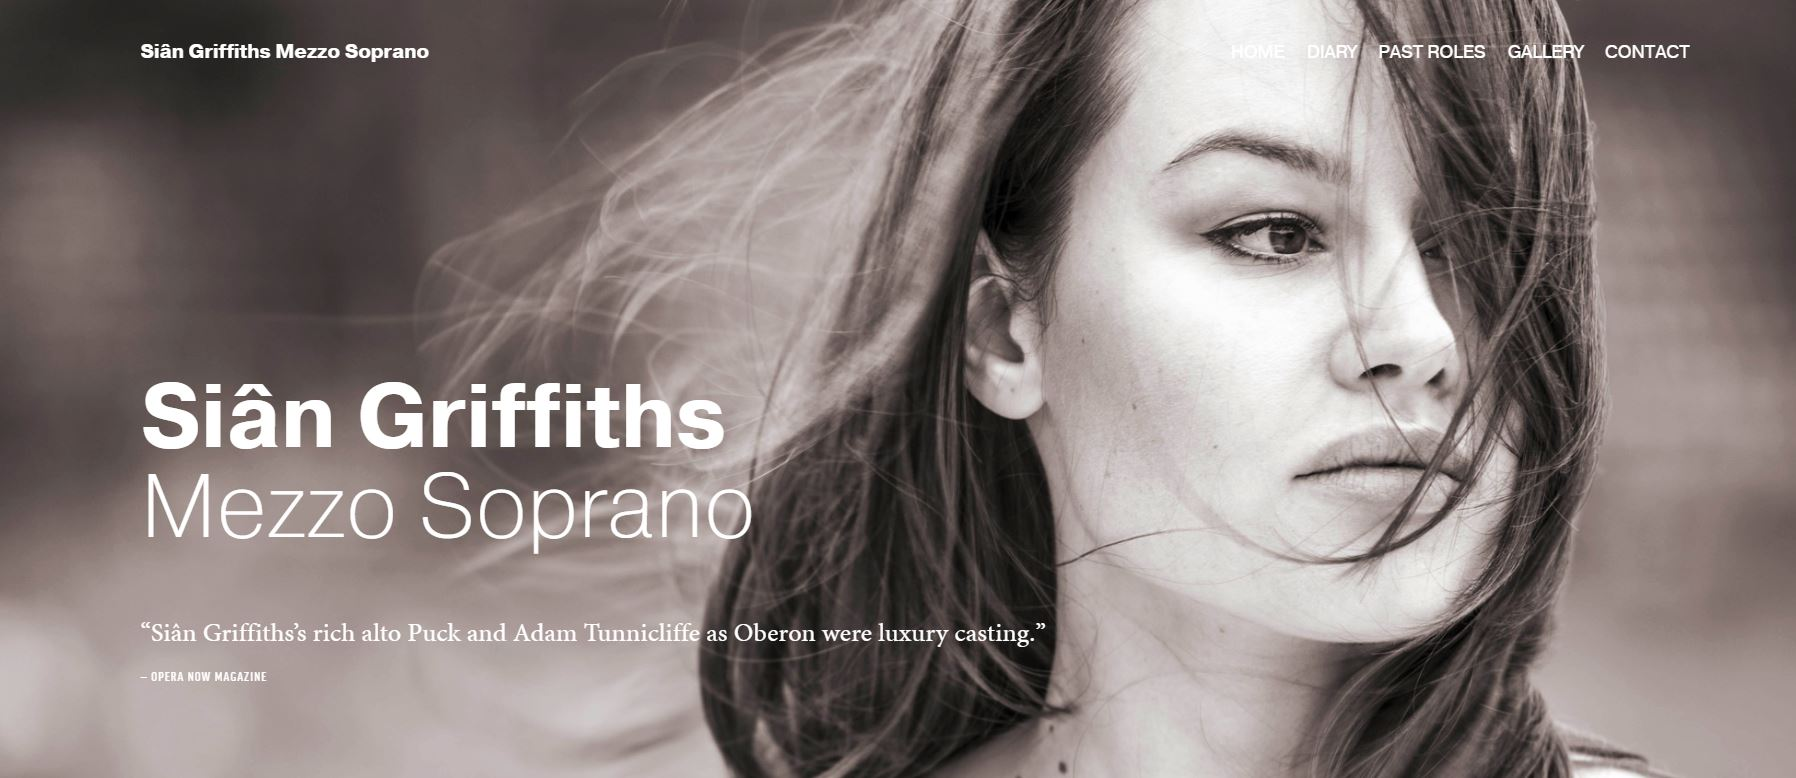 Copy of Screenshot of home page of Mezzo Soprano Sian Griffiths website